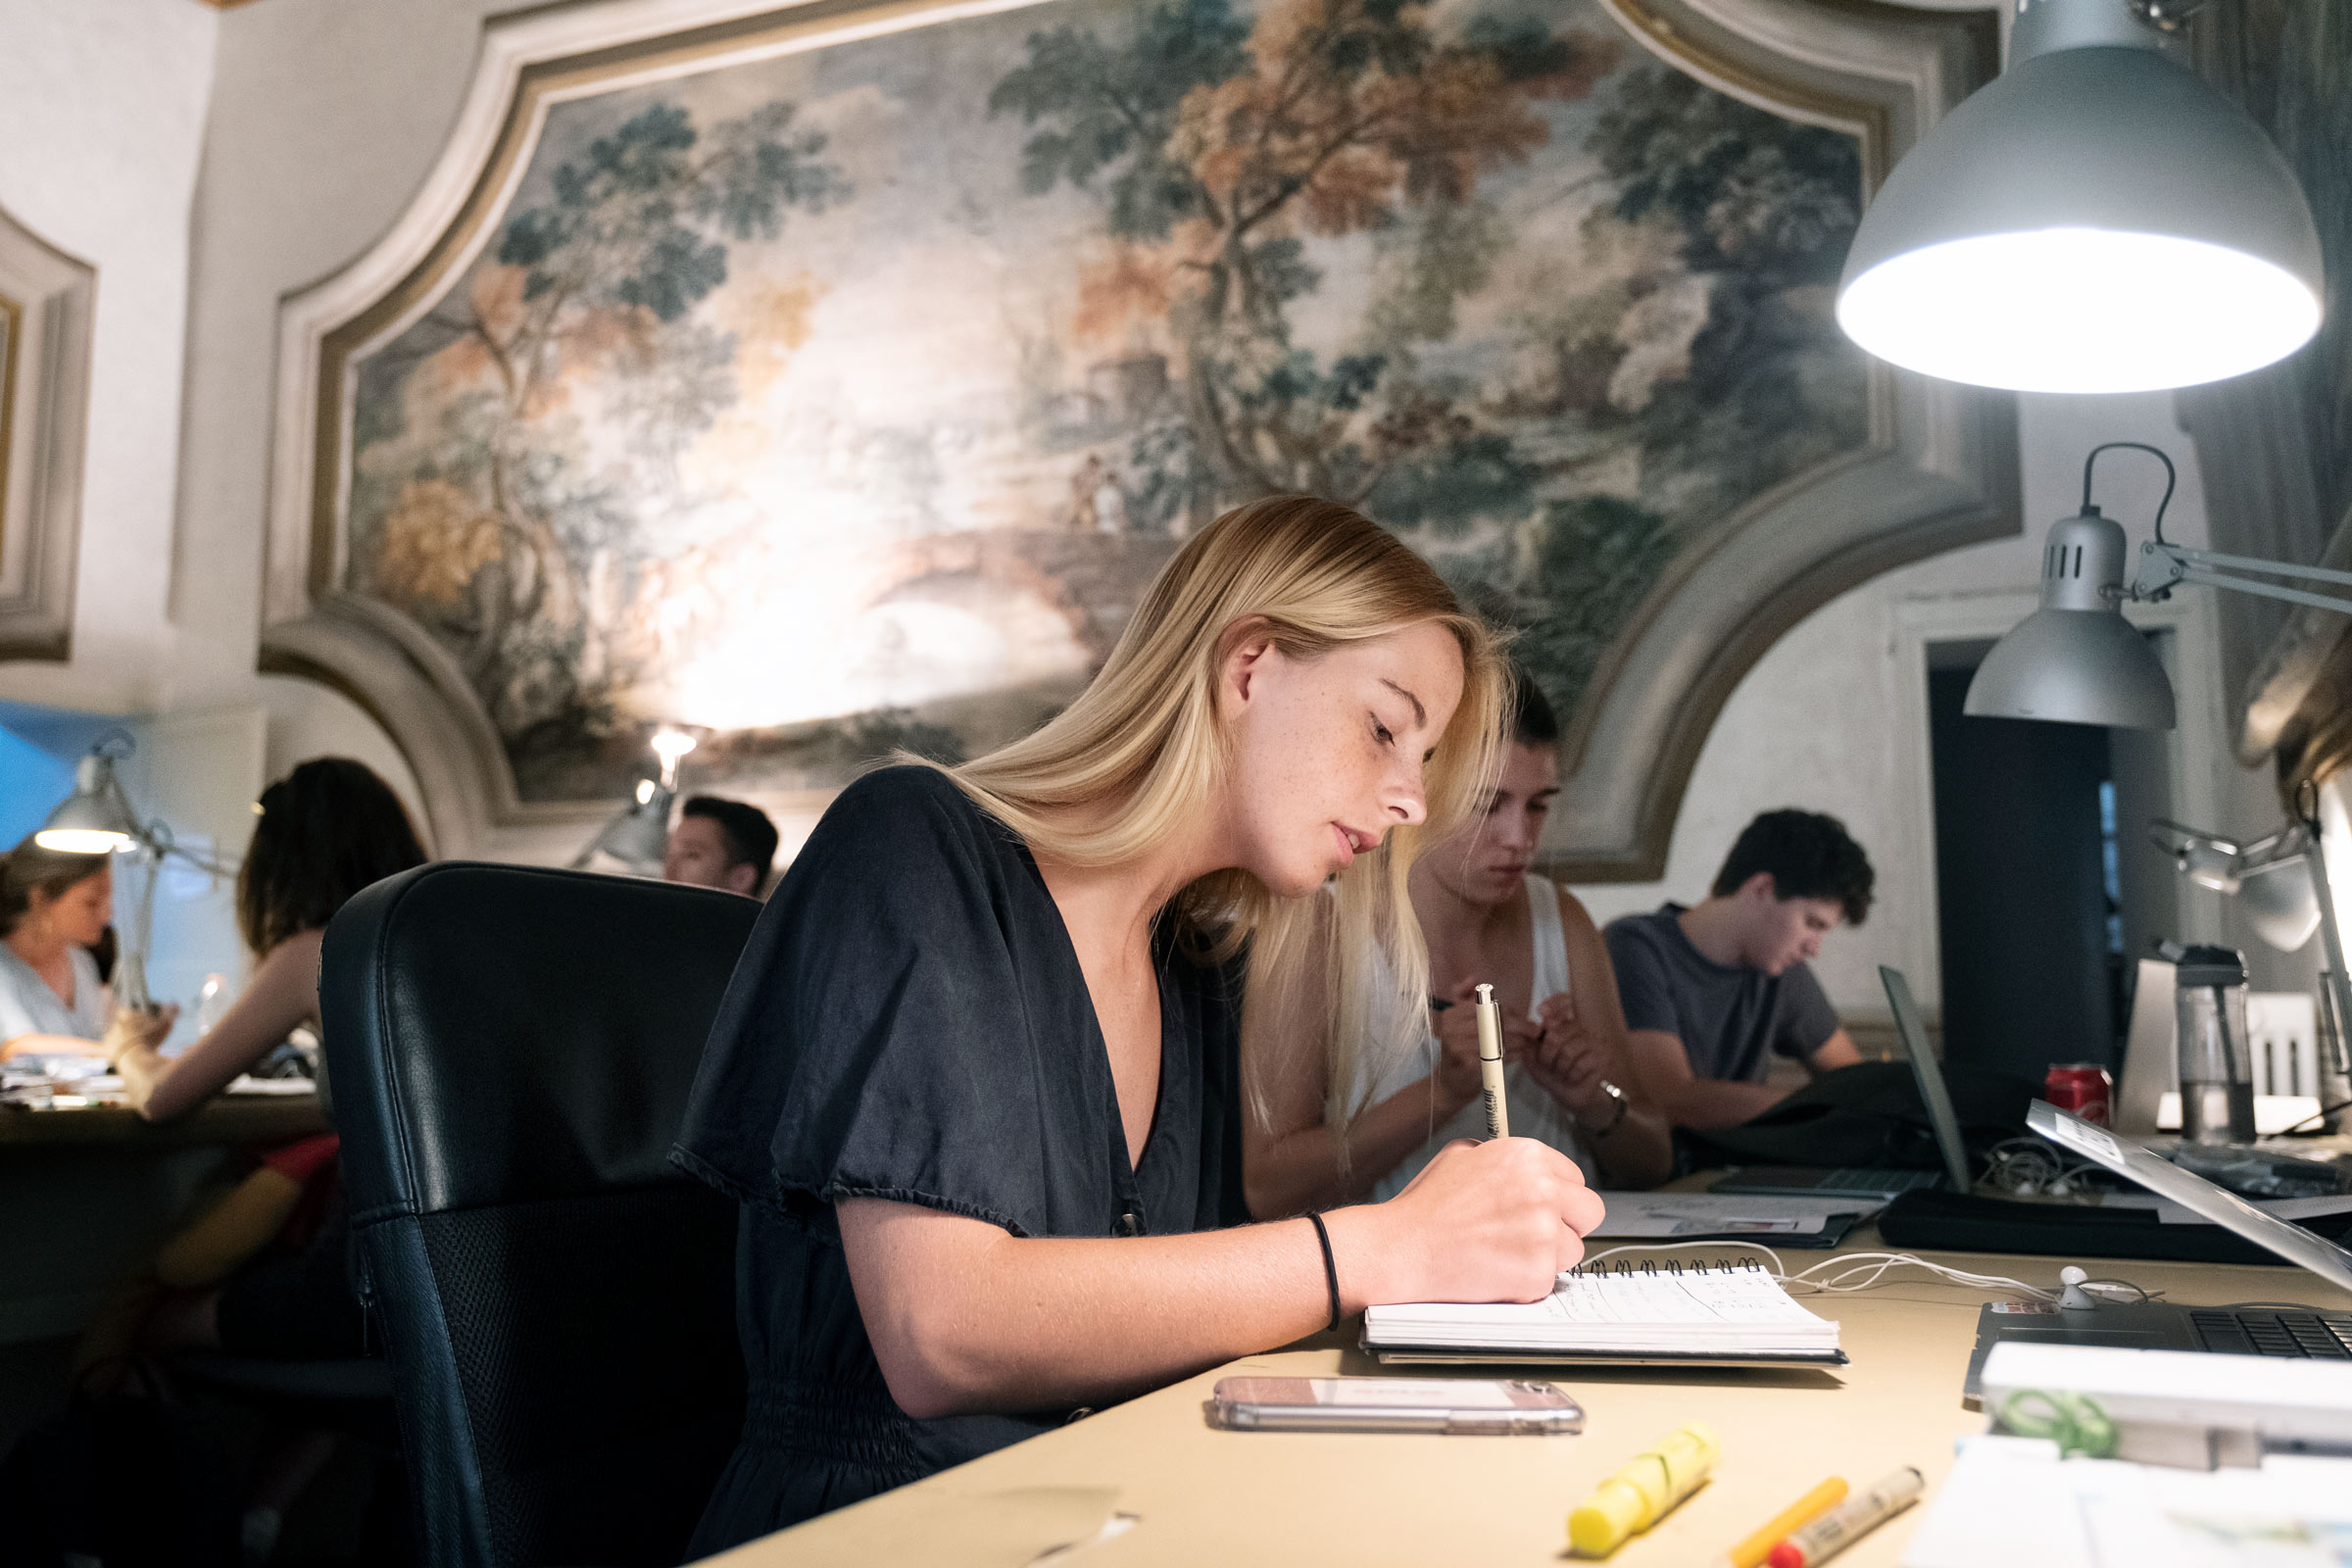 T.J. Barnett writes in a notebook during her study abroad trip in Italy.